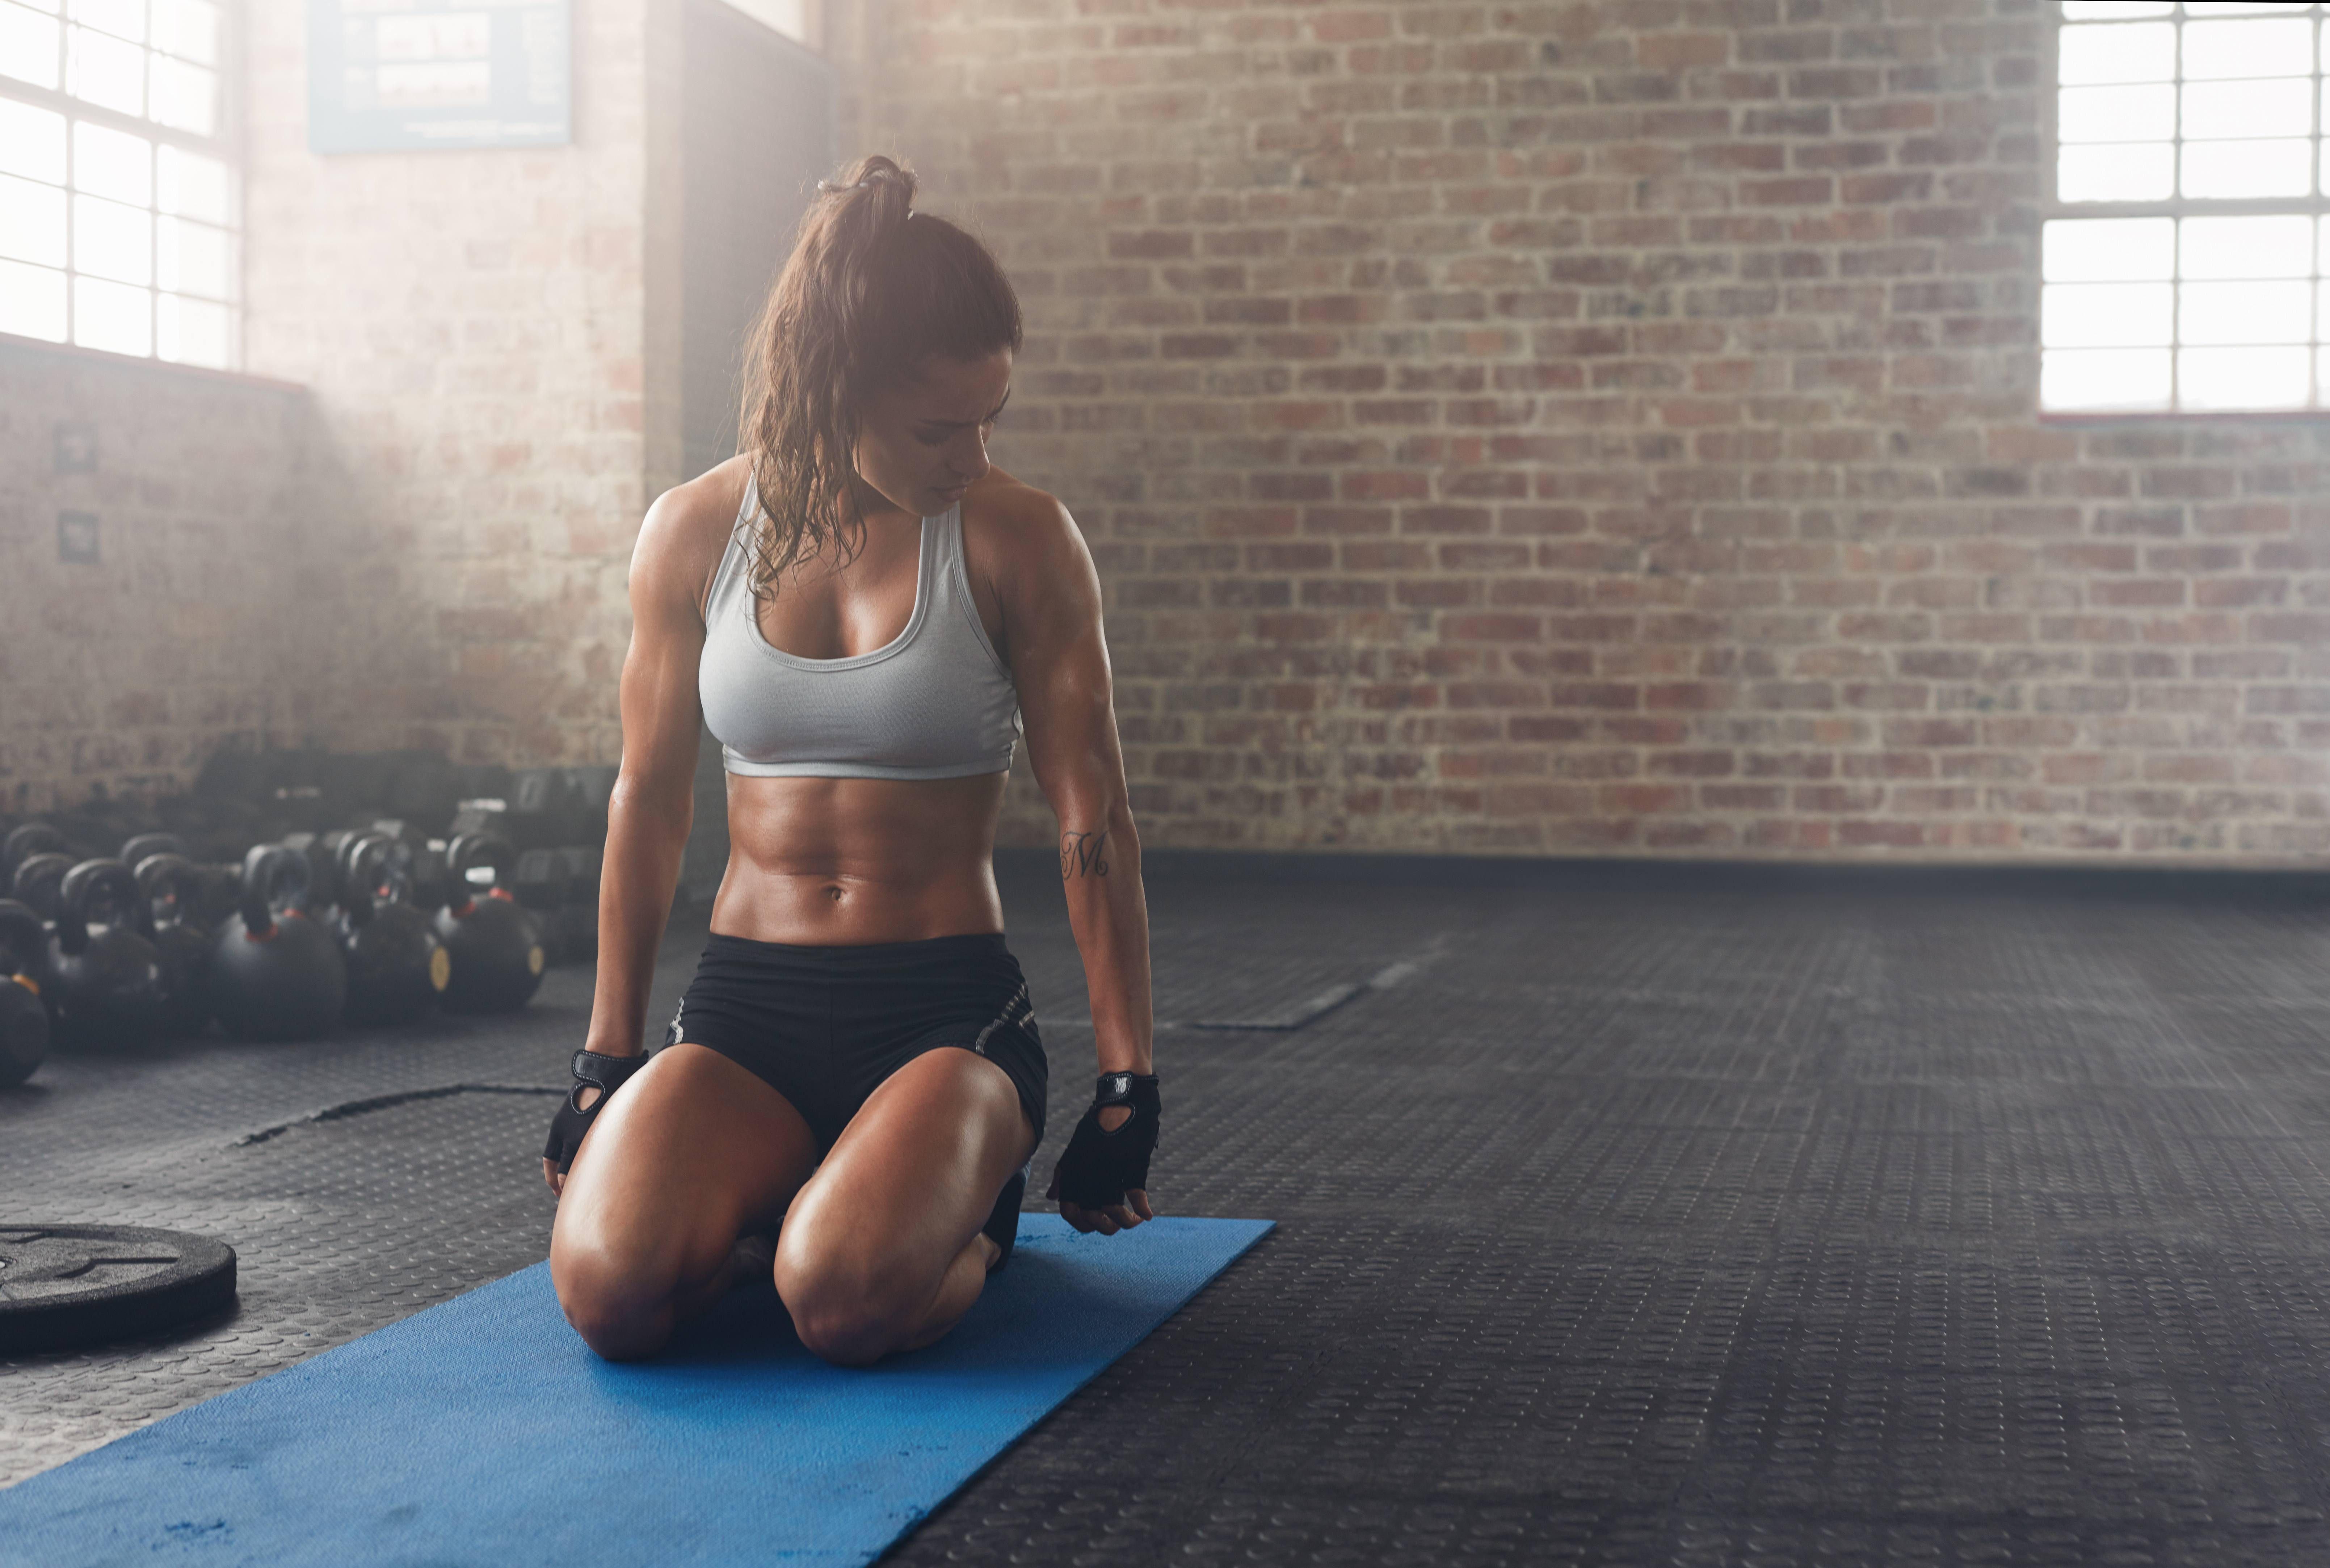 Are Toned Arms Genetic? (And Why Arm Workouts for Women Are